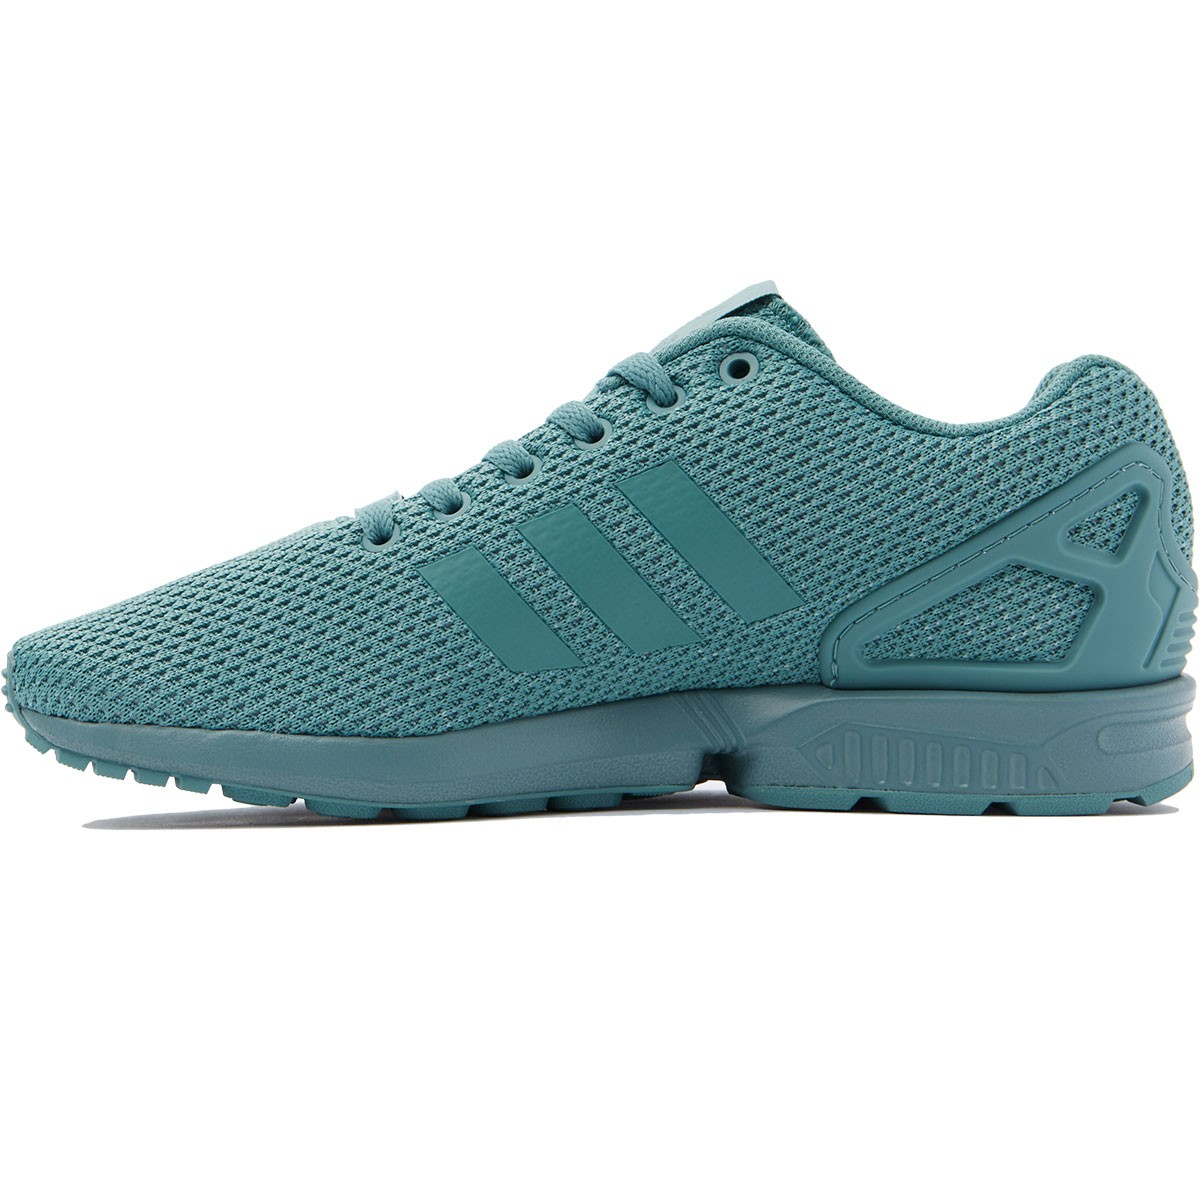 a695e3d806e42 Adidas ZX Flux Shoes - Vapor Steel - 8.0